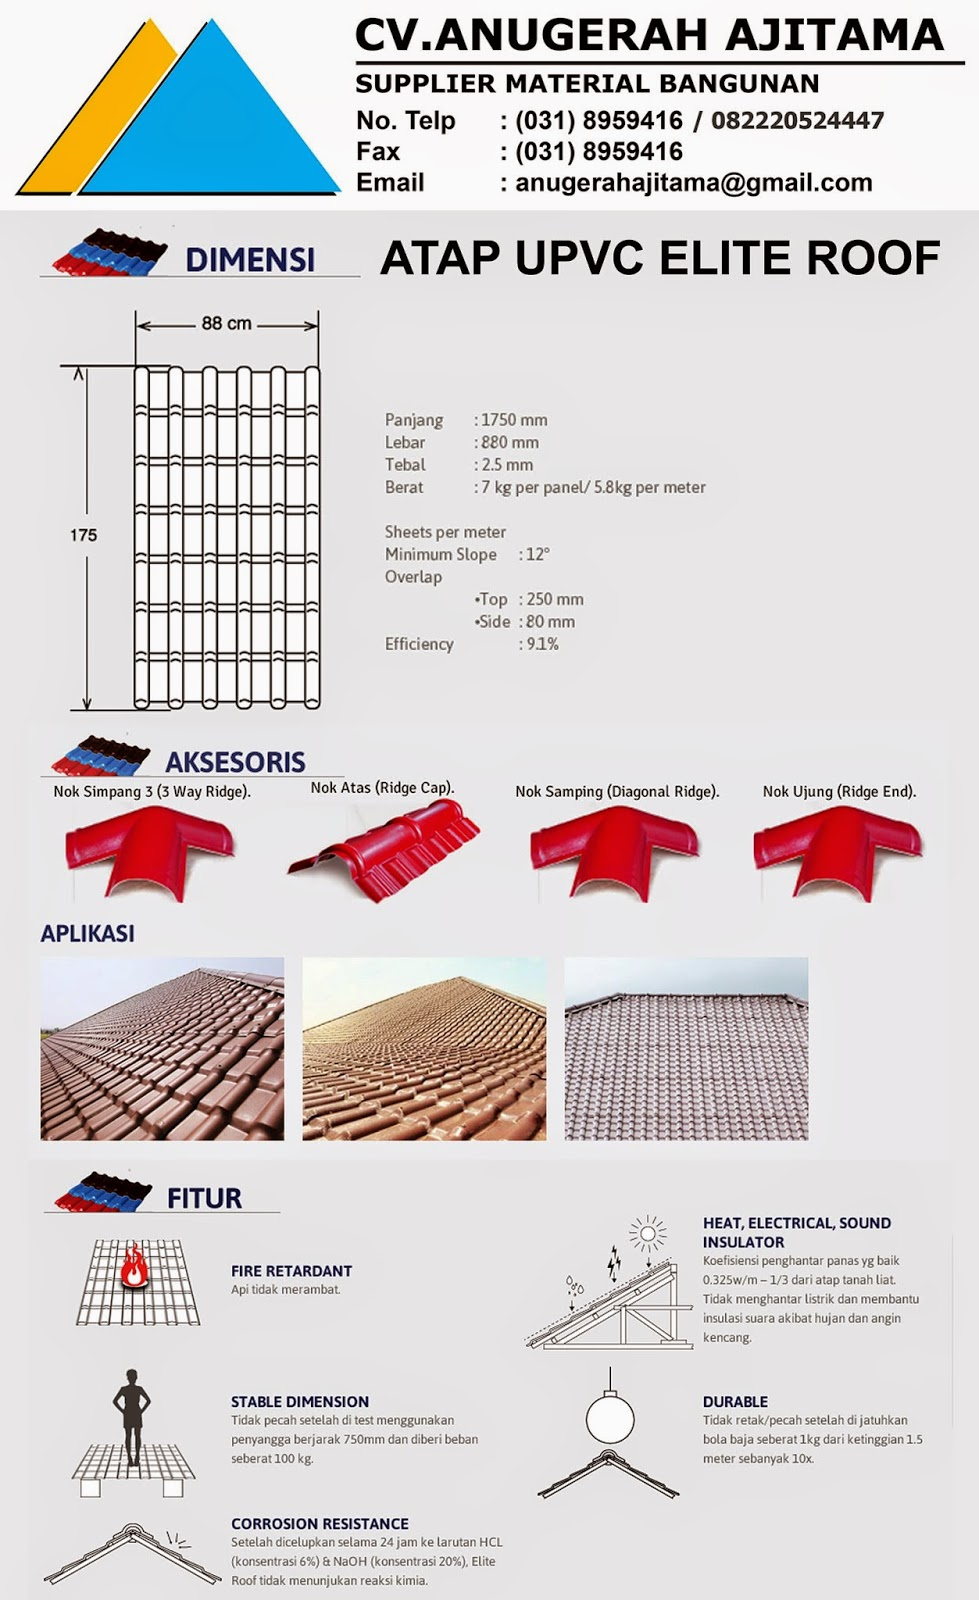 DIMENSI ATAP UPVC ELITE ROOF